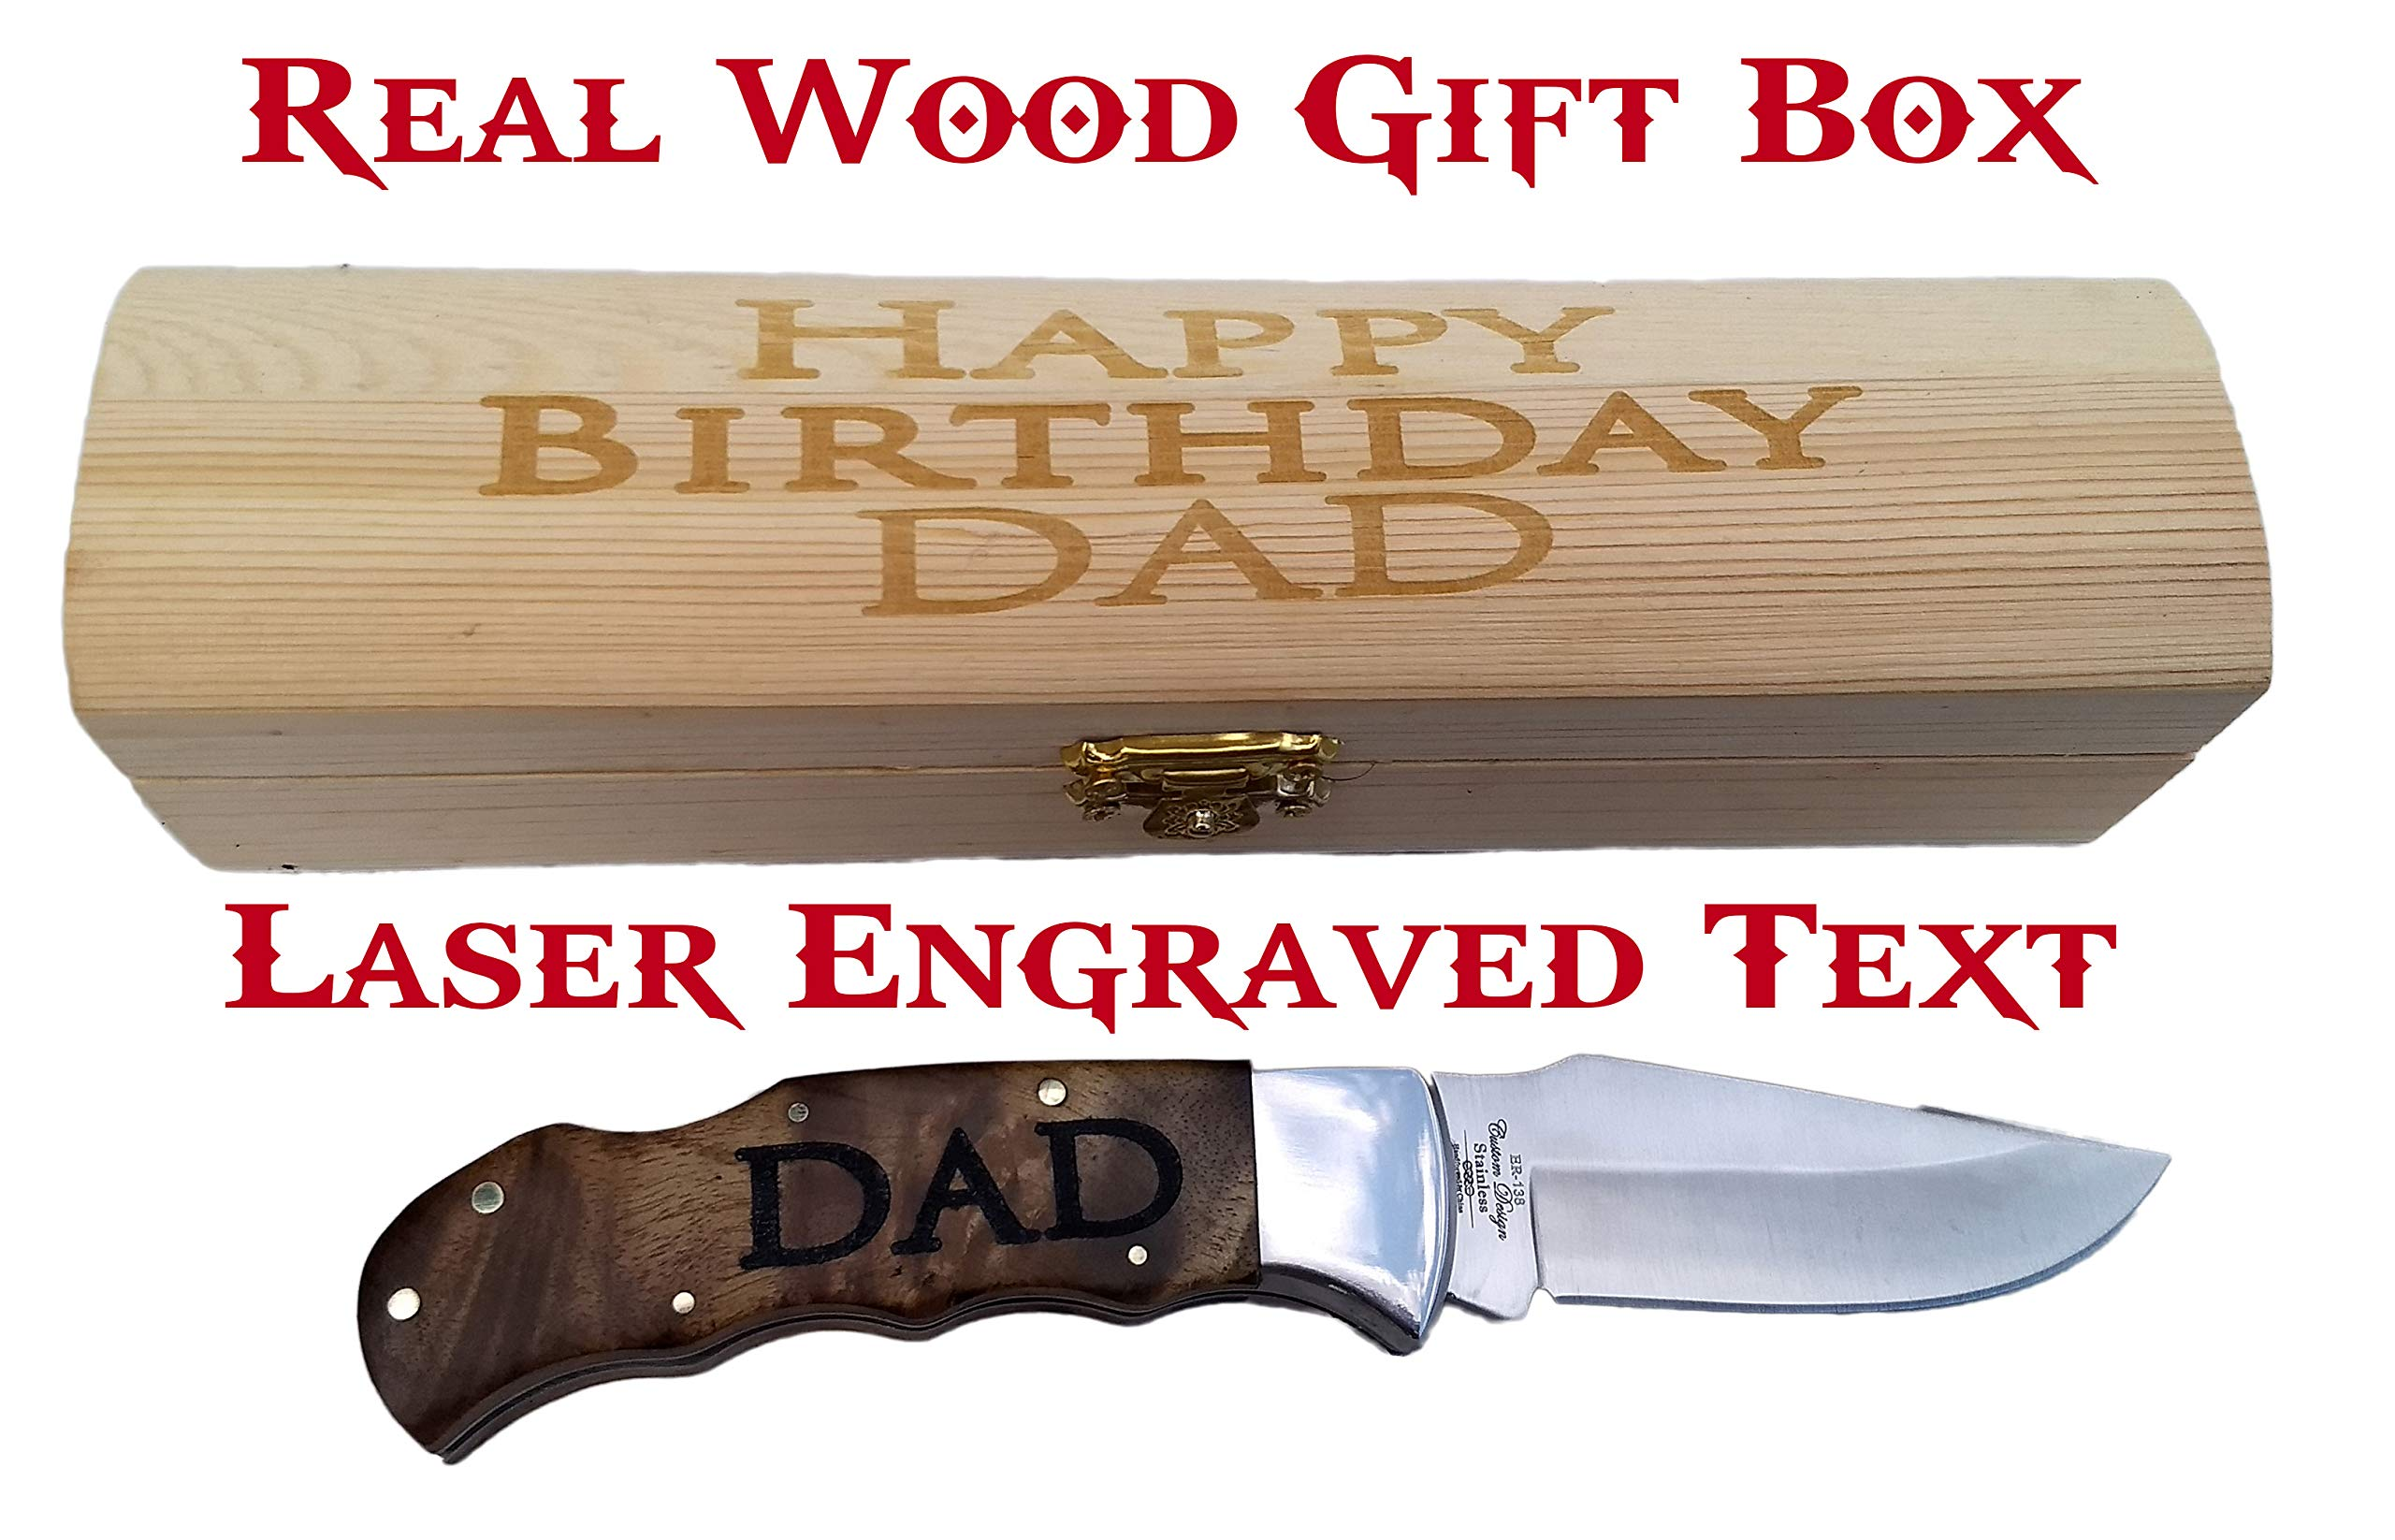 Brass Honcho Personalized Gifts for Men | Engraved Pocket Knife | Custom Engraved Handle and Gift Box | Great Last Minute Gift by Brass Honcho (Image #2)